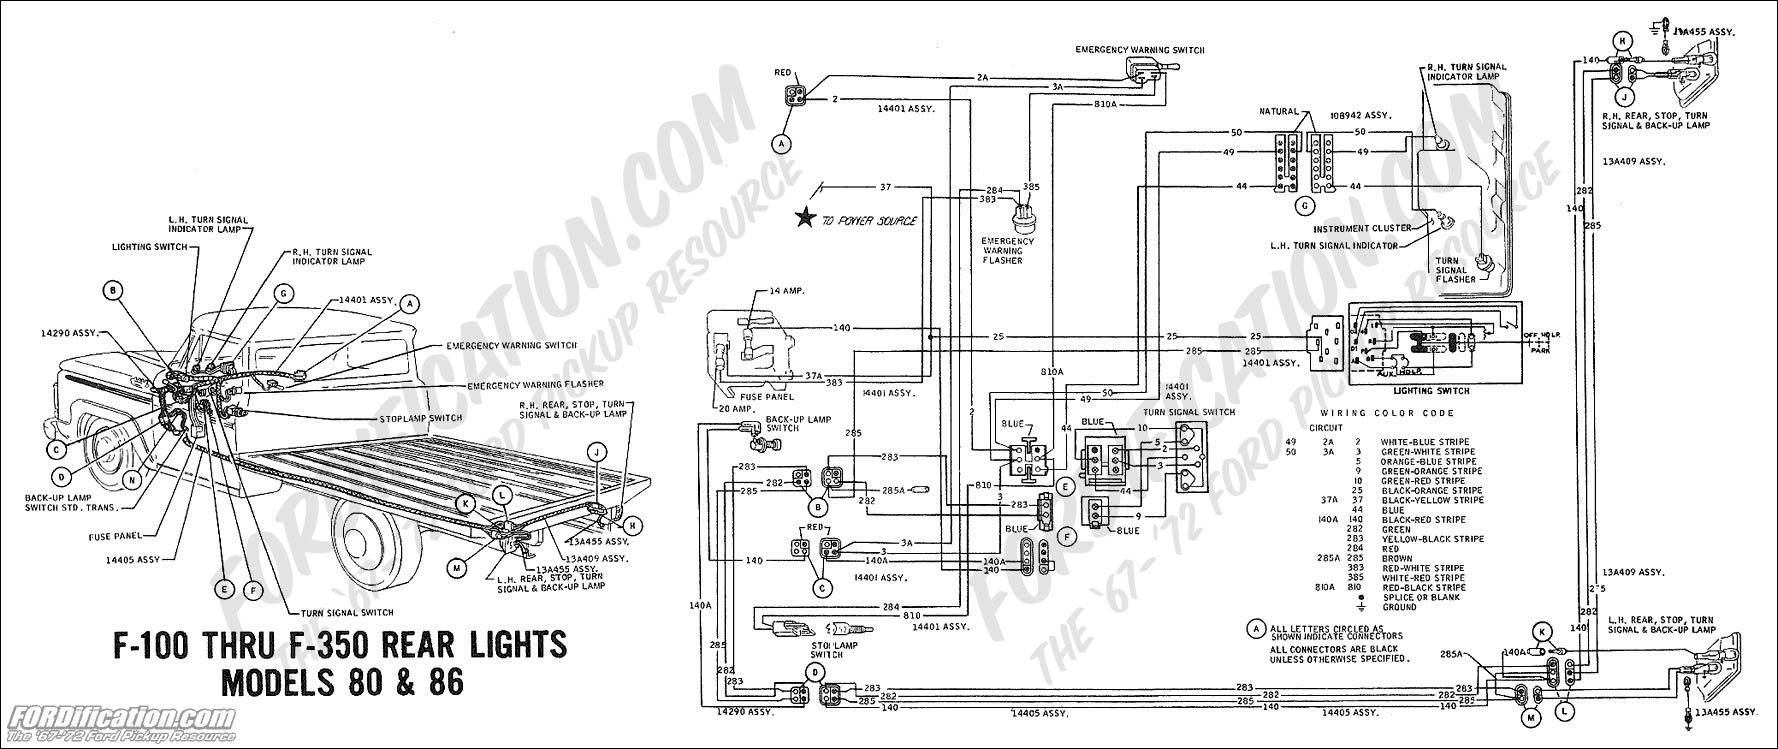 wiring_69rearlights mdls80 86 ford truck technical drawings and schematics section h wiring ford f350 wiring harness at gsmportal.co